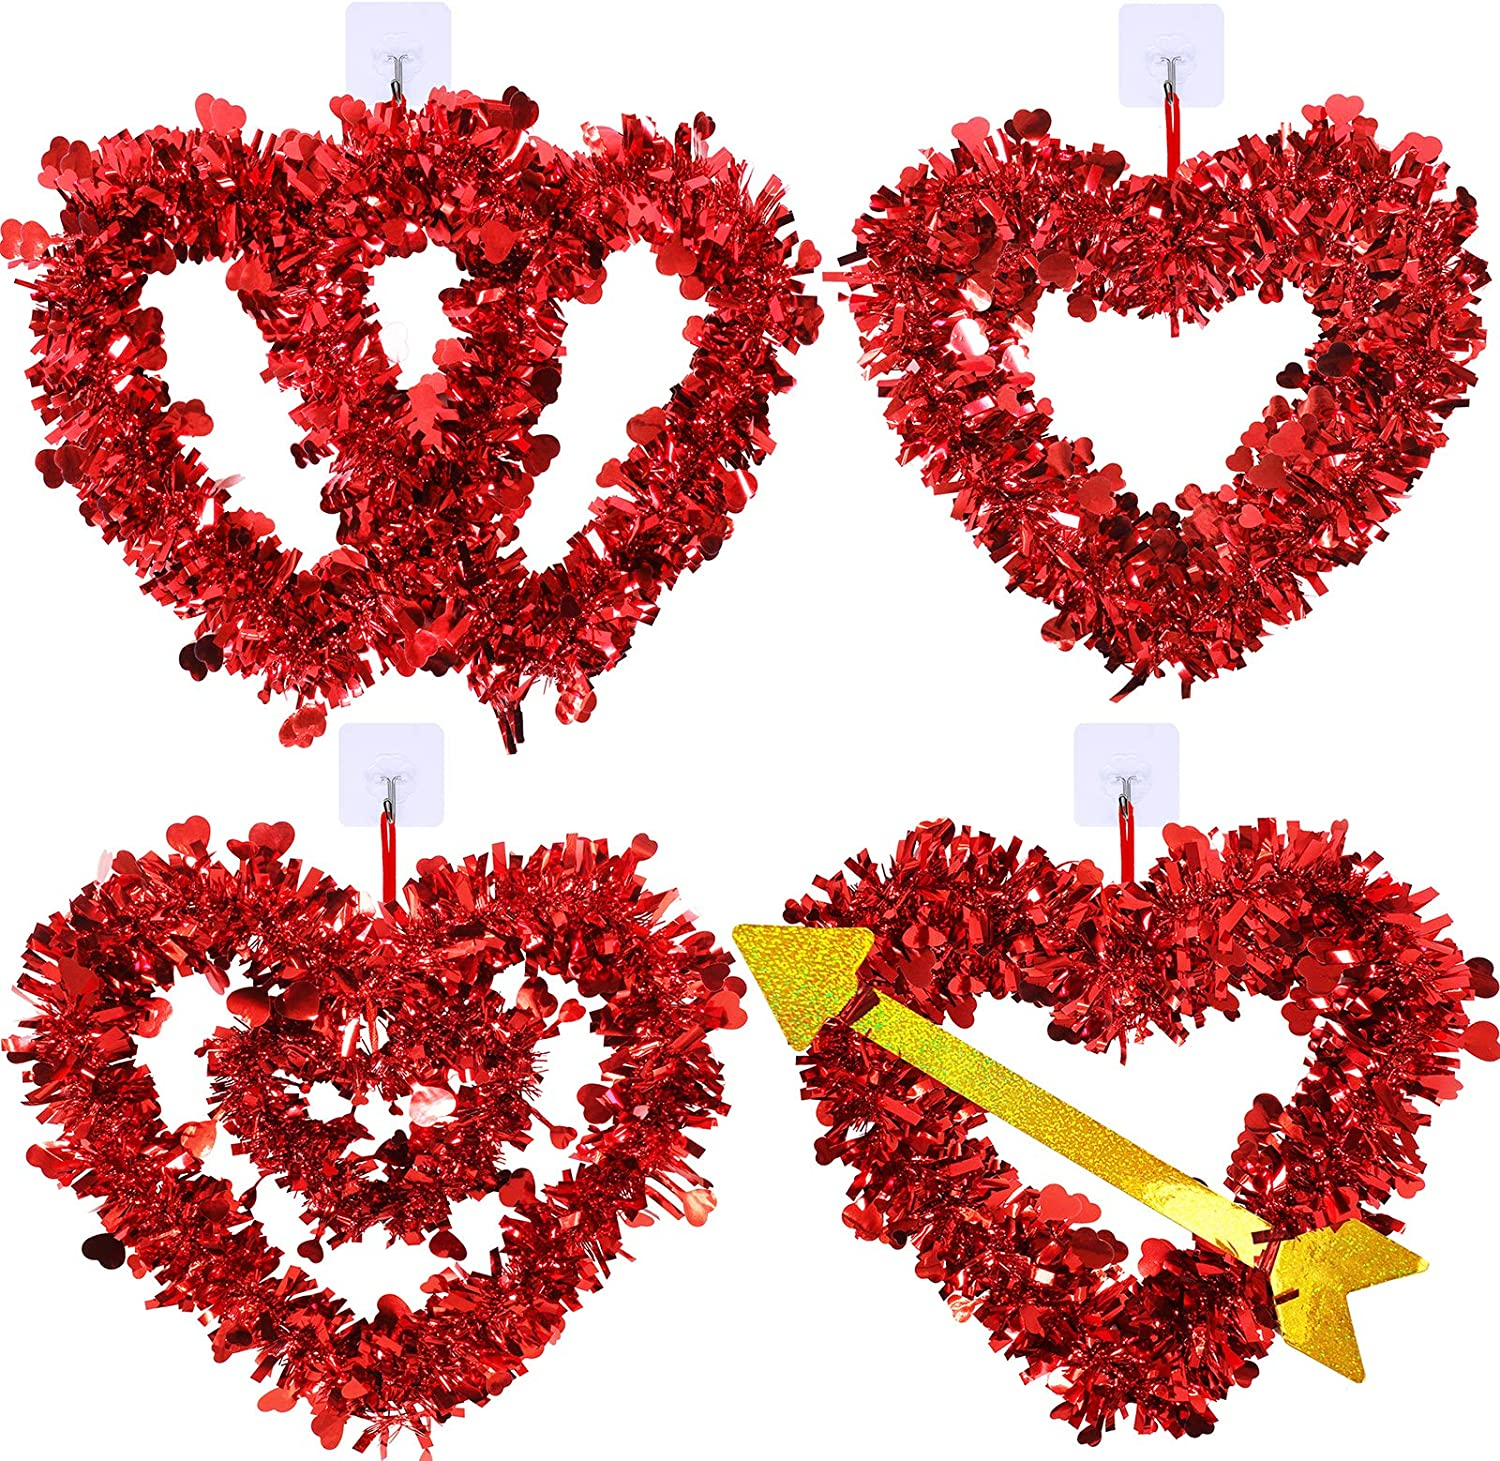 Winlyn 4 Pcs Valentines Heart Wreaths Assortment Red Tinsel Foil Heart Shaped Wedding Wreaths Valentines Front Door Wreaths for Door Wall Window Valentine's Day Mother's Day Wedding Party Decoration